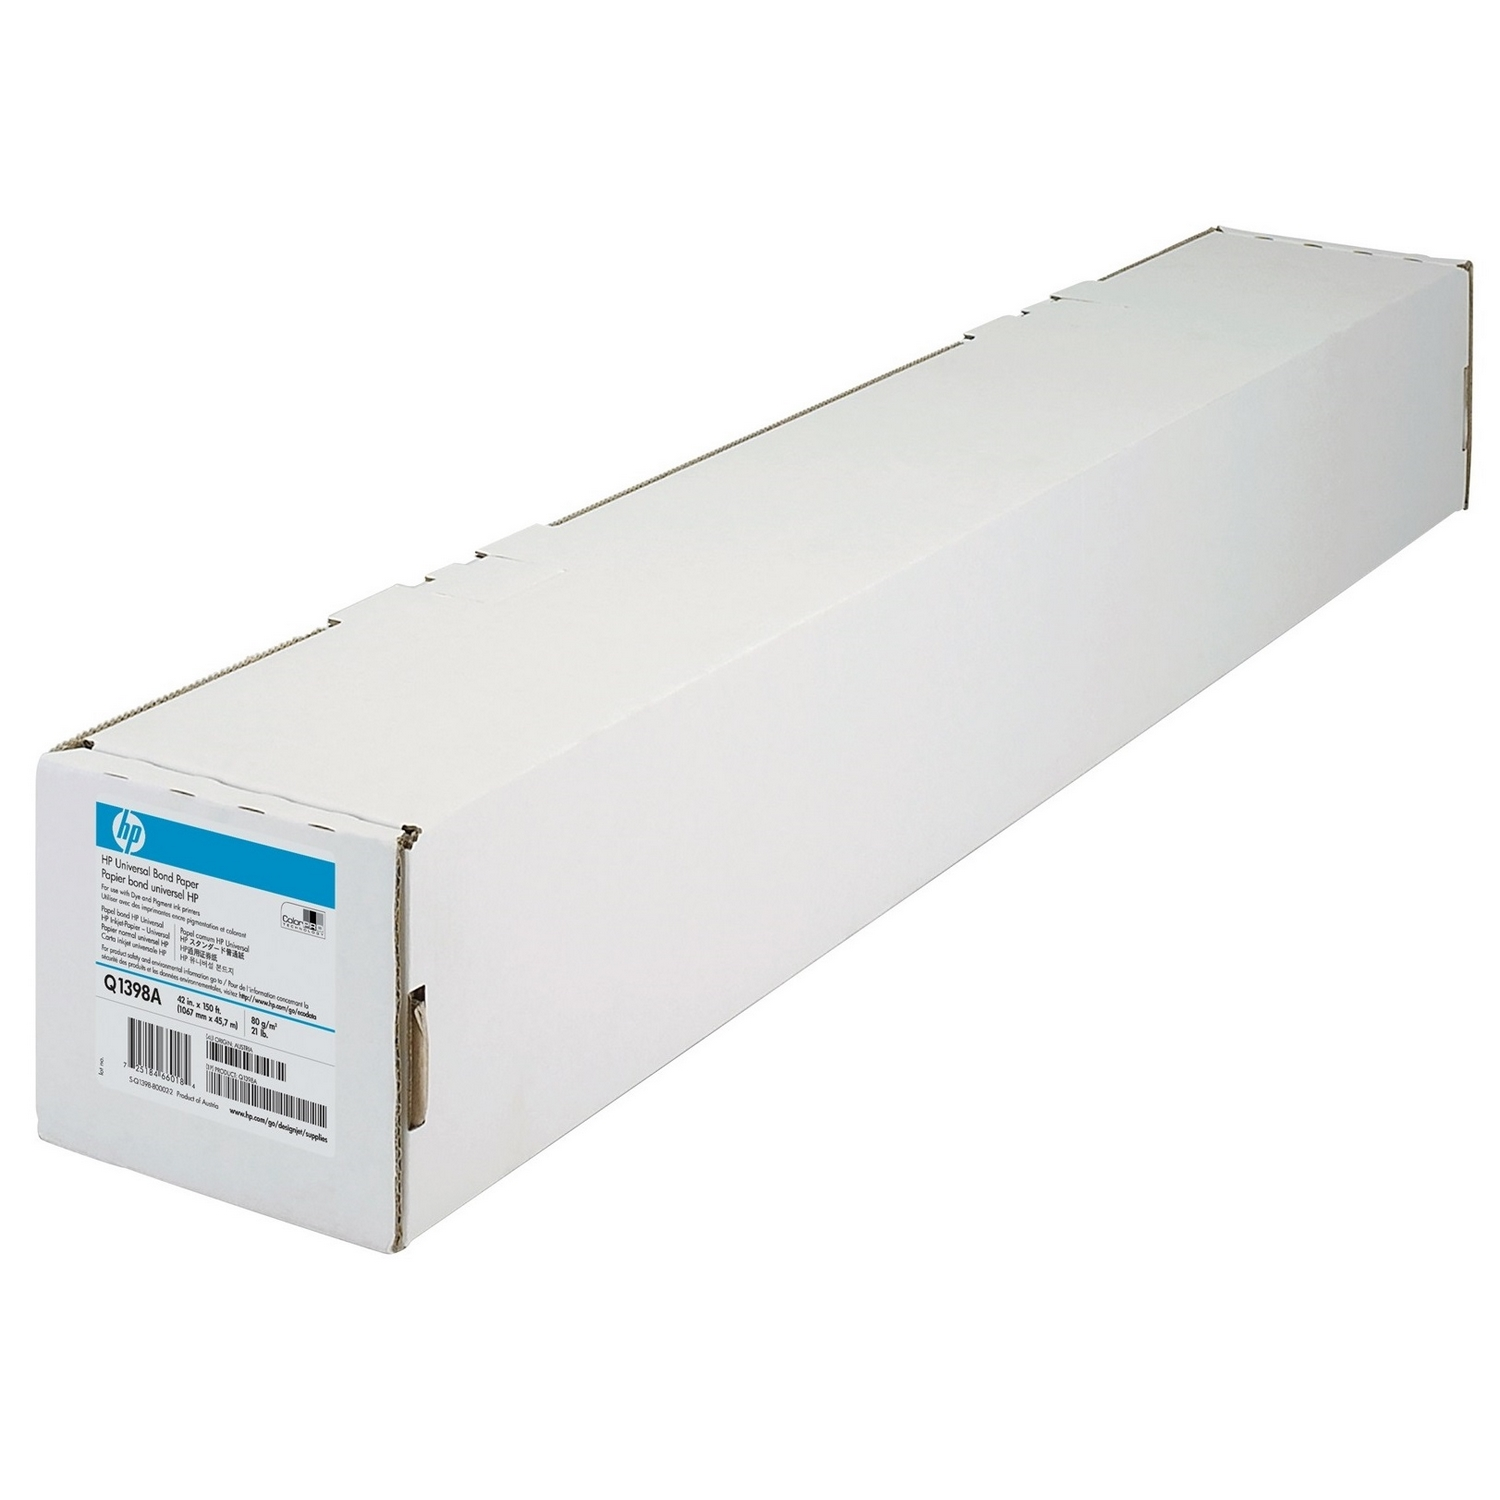 Original HP Q1398A 80gsm 42in x 150ft Paper Roll (Q1398A)